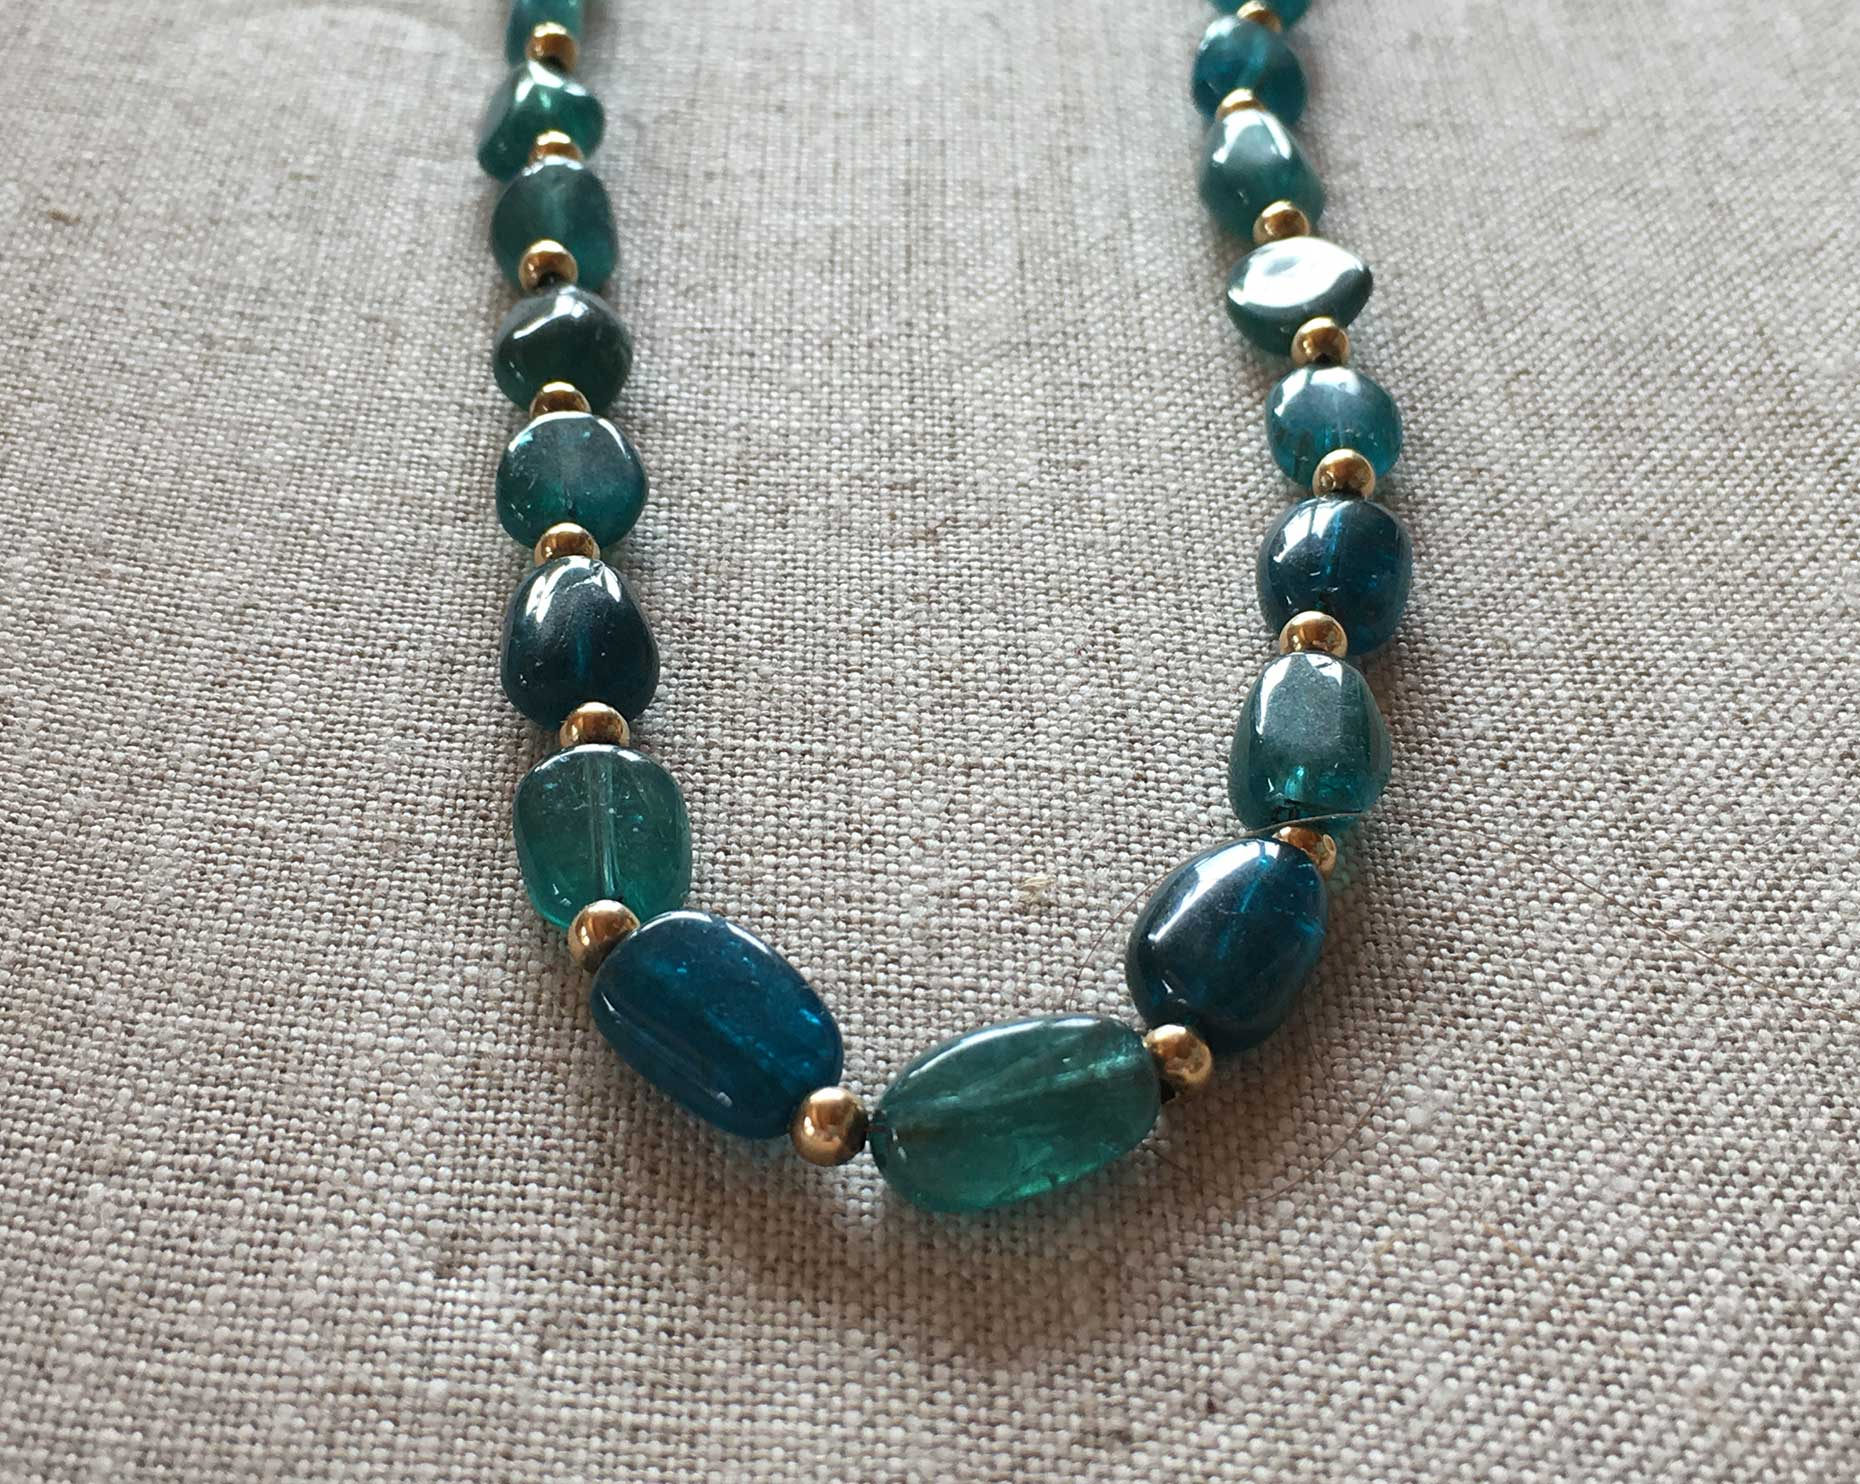 ewelry by Tibby Speare hanging in Pine Moon Fine Art.Apatite Tibby